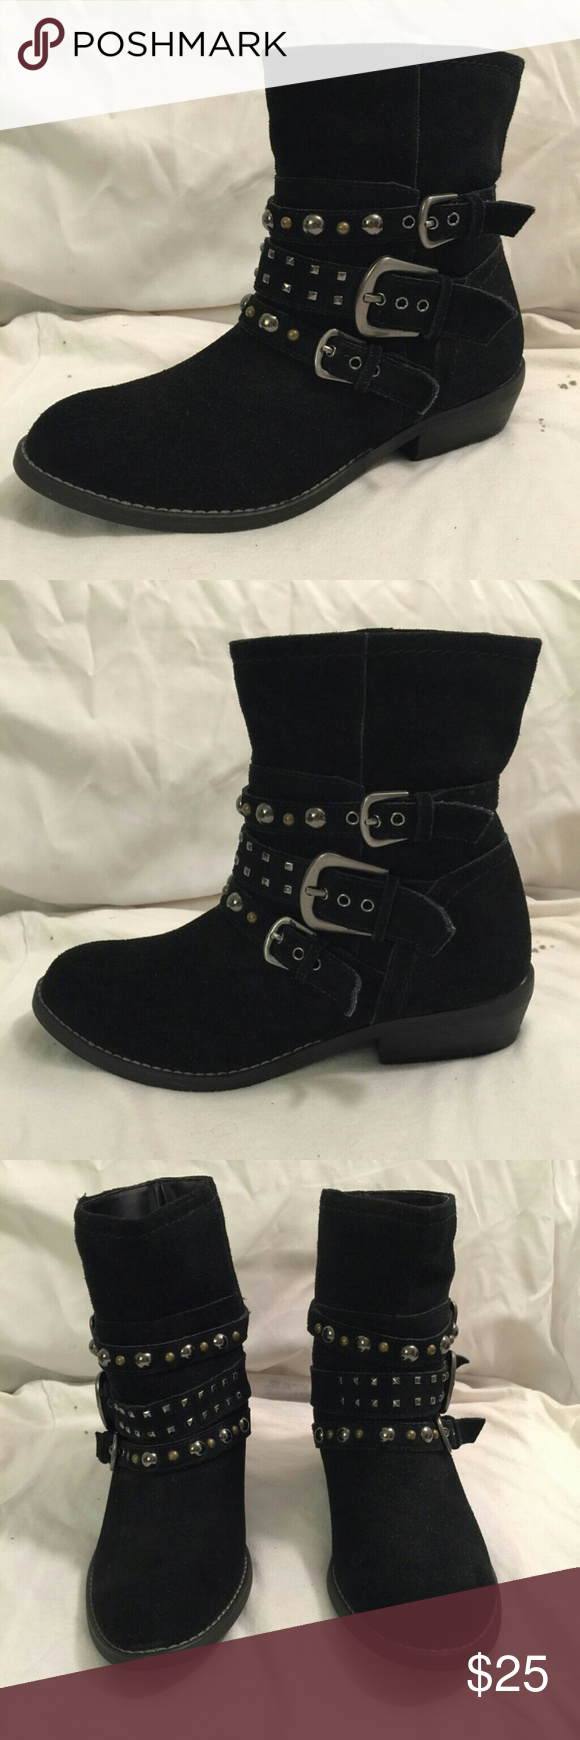 White Mountain Strappy Suede Ankle Boot Ankle boots never worn but a bit dusty and dingy from sitting in my closet. Right shoe has a tiny white spot other than that shoes look great. Shaft 6.5 in. Heel height 1.5. Open to offers⭐ Please feel free to ask questions😊 White Mountain Shoes Ankle Boots & Booties